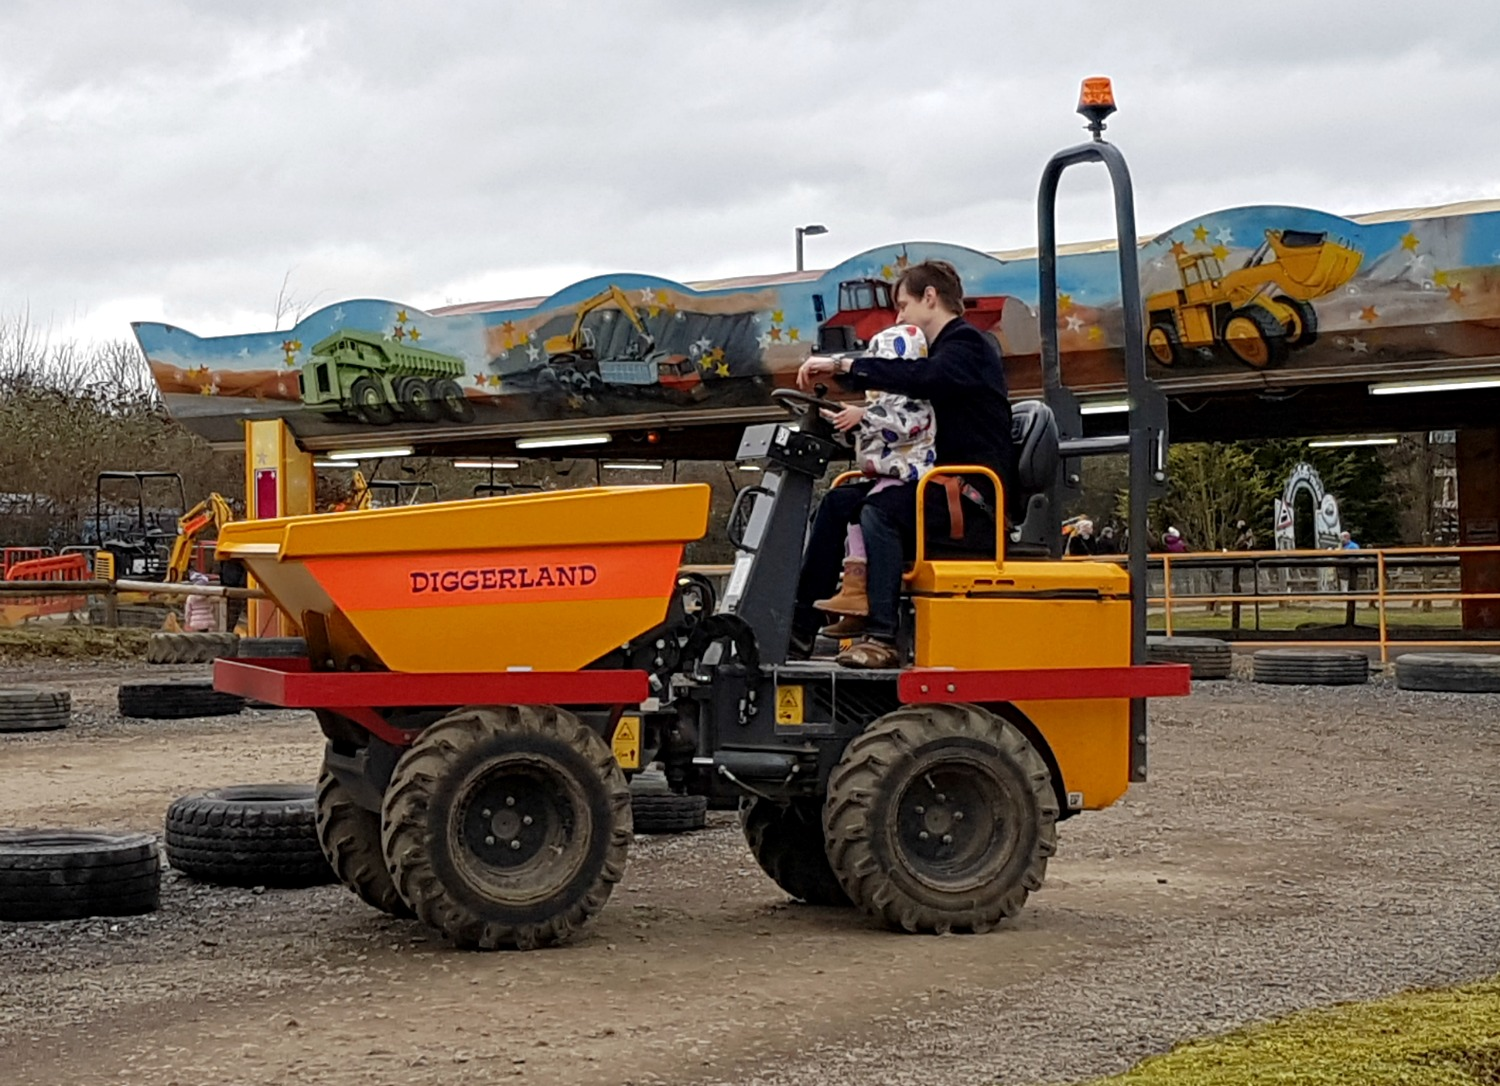 My daughter driving a dumper truck at Diggerland Kent - one of the attractions on this family day out